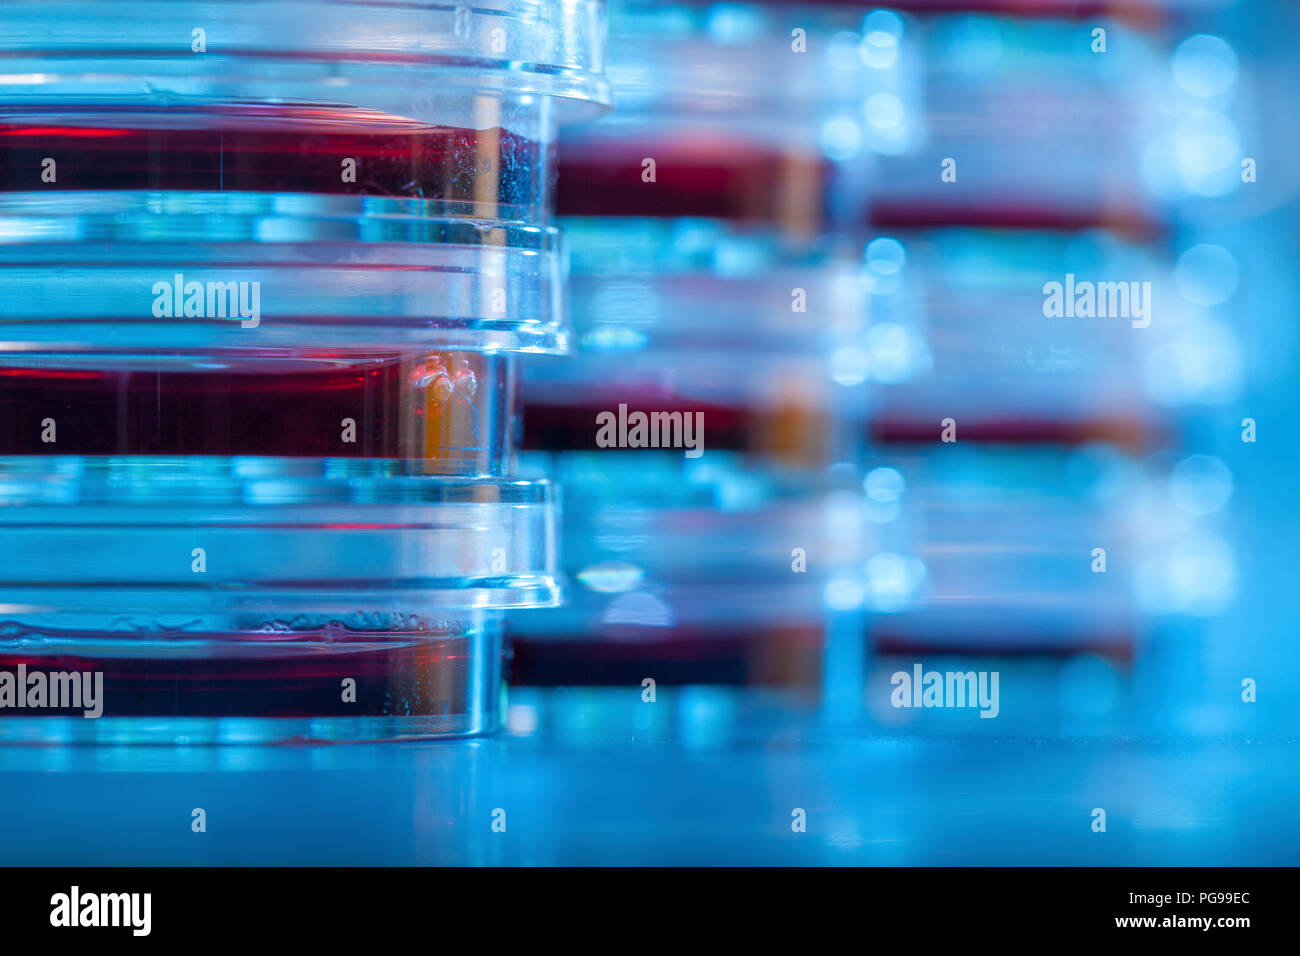 Microbiology research. - Stock Image